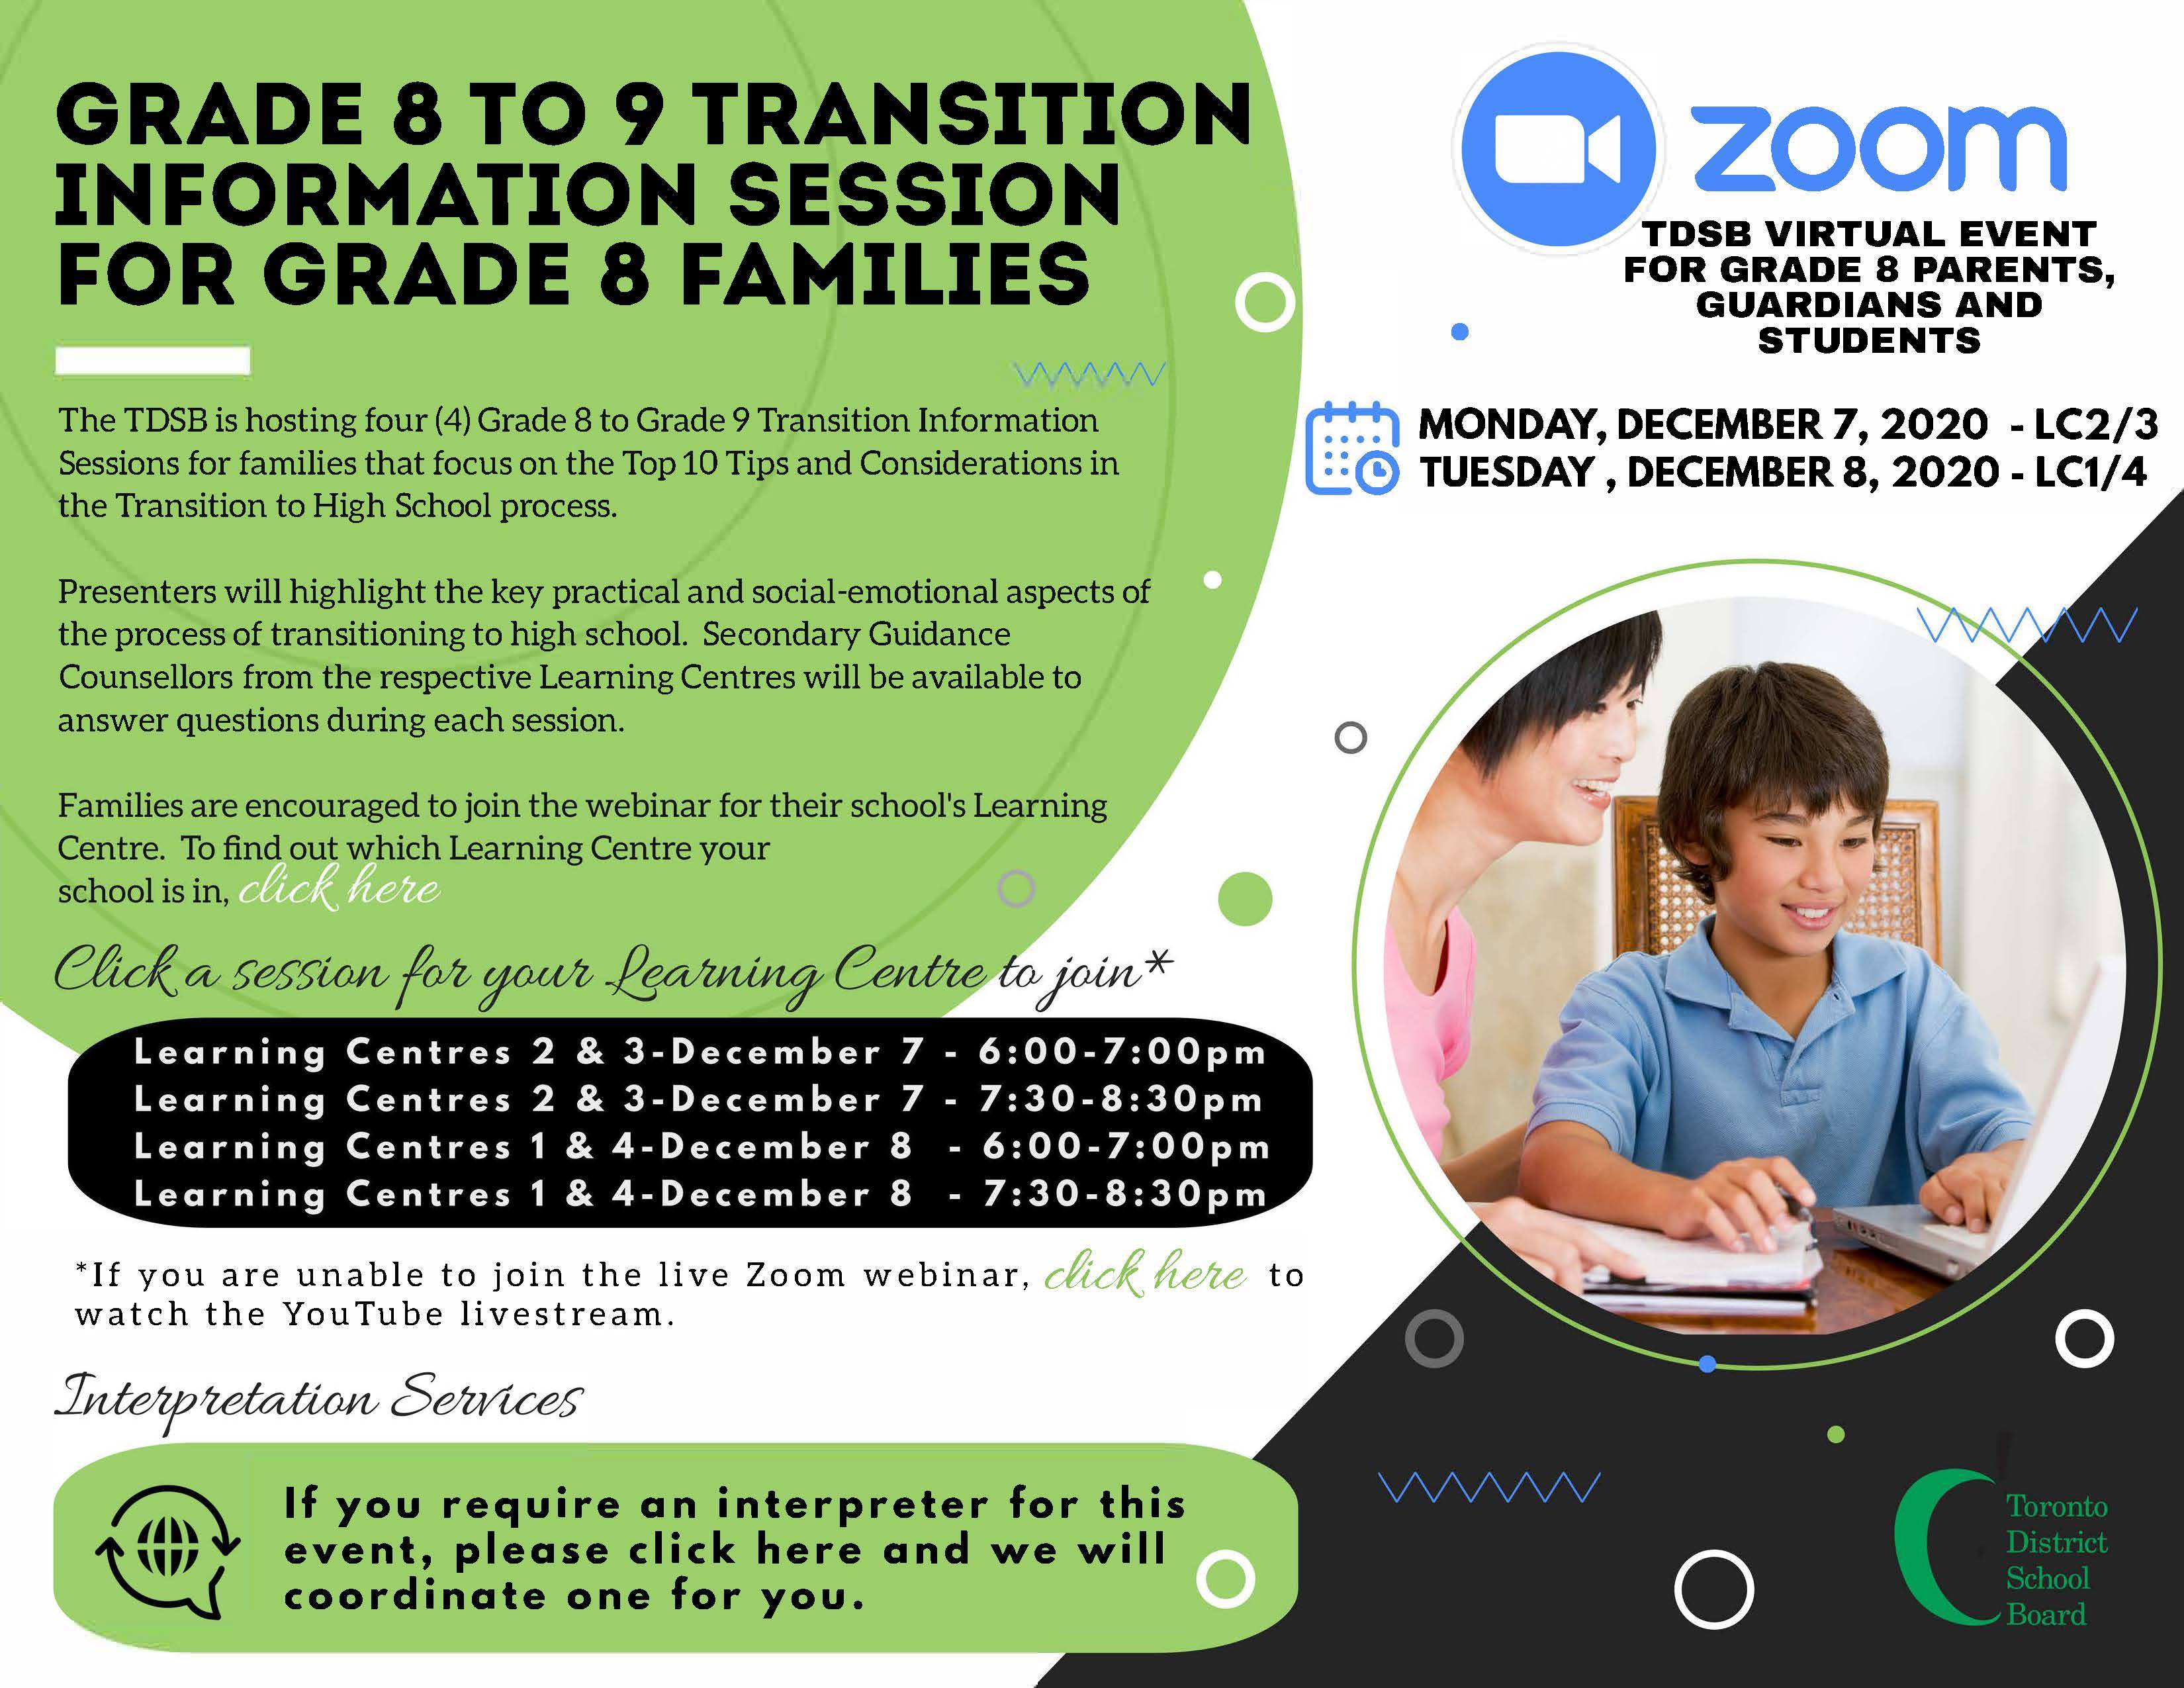 TDSB Grade 8 To Grade 9 Transition Information Session For Grade 8 Families